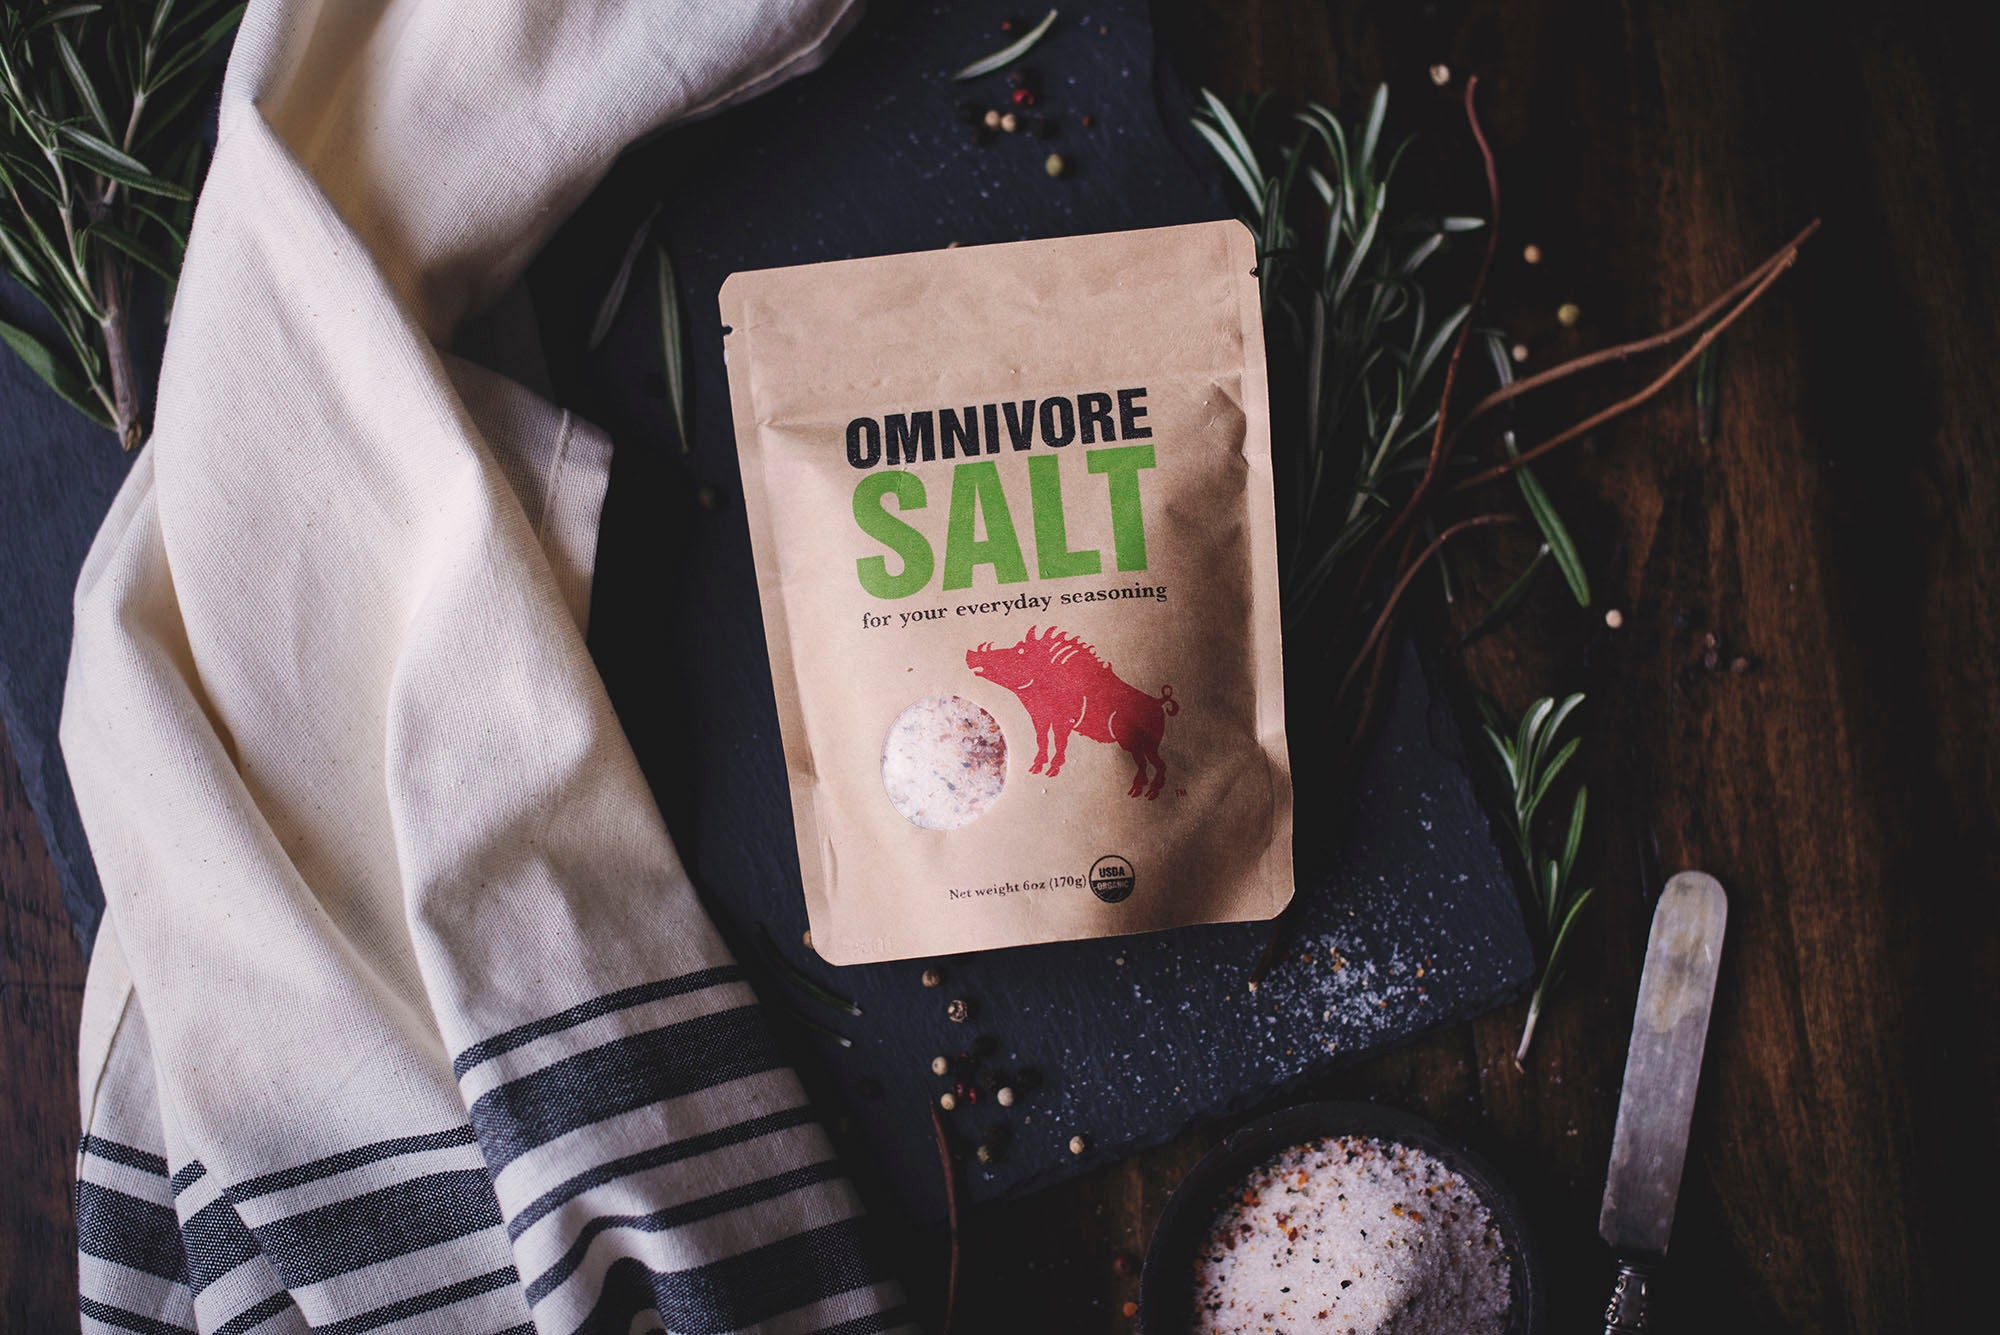 <a href='http://www.omnivore.us/products/omnivoresalt' target='_blank'><b>Omnivore Classic Seasoning Salt -</b></a><br> Omnivore Salt is a delightful blend of organic spices and natural sea salt, harvested from the salt beds off the coast of Northern California. Just a pinch adds an umami taste to any recipe. A classic rub for grilling or roasting that also is a versatile cooking and finishing salt.